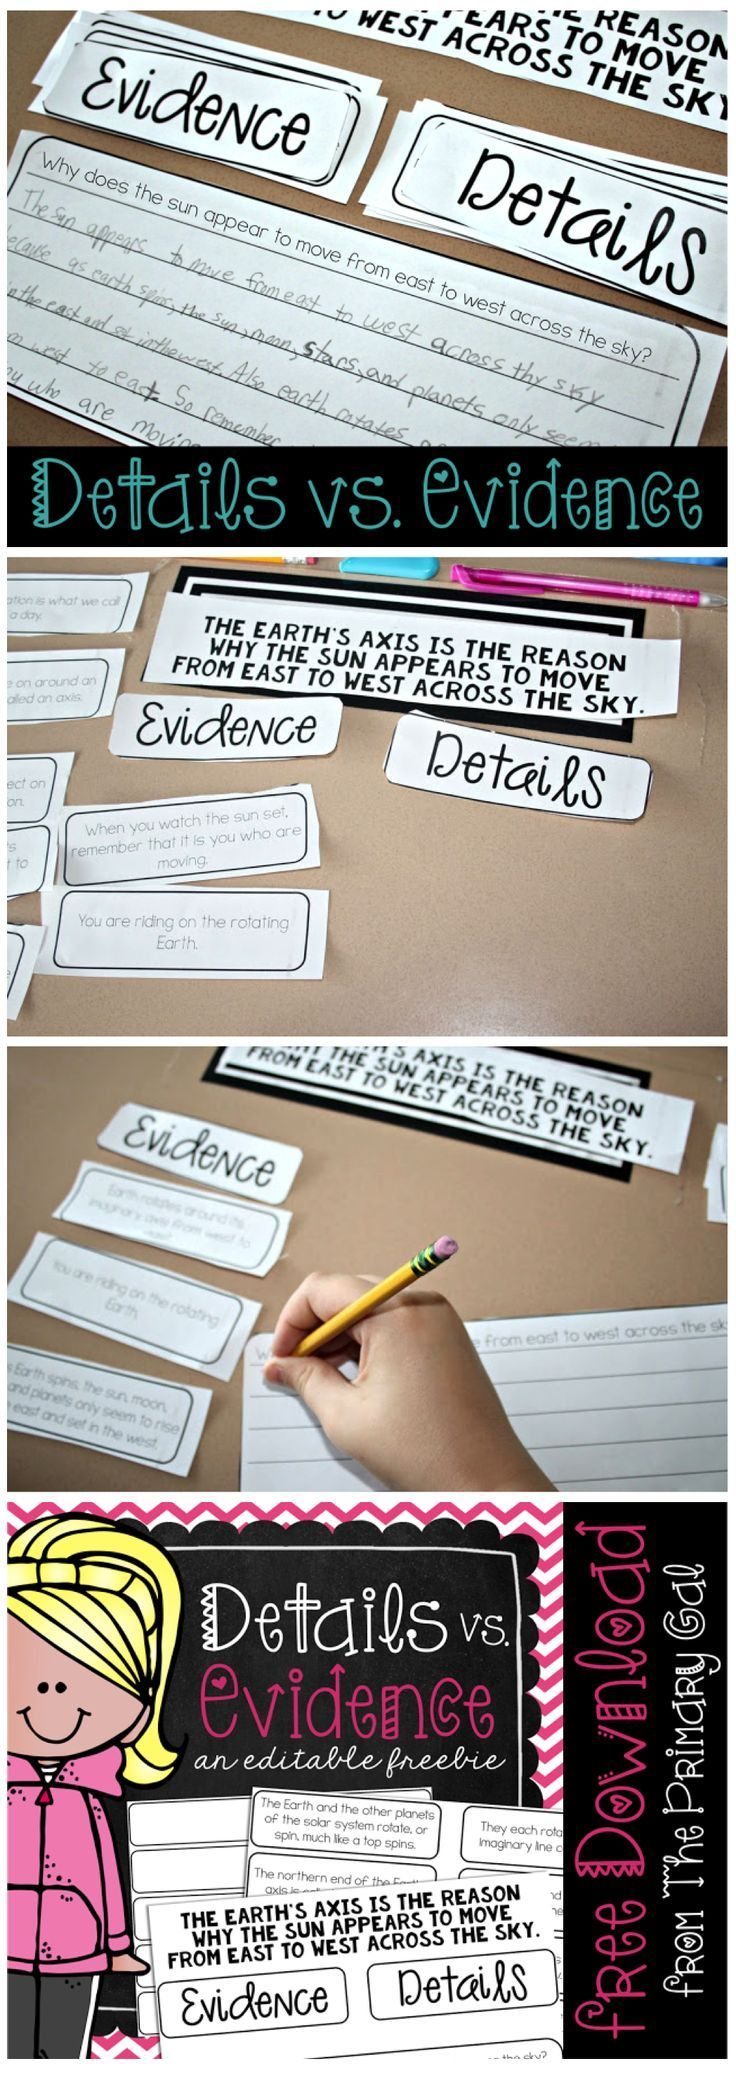 Worksheet Reading Material For 4th Graders 1000 images about reading activities on pinterest context clues hi im amanda wilp author of the primary gal i teach fifth grade and have a nerdy passion for differentiation love to